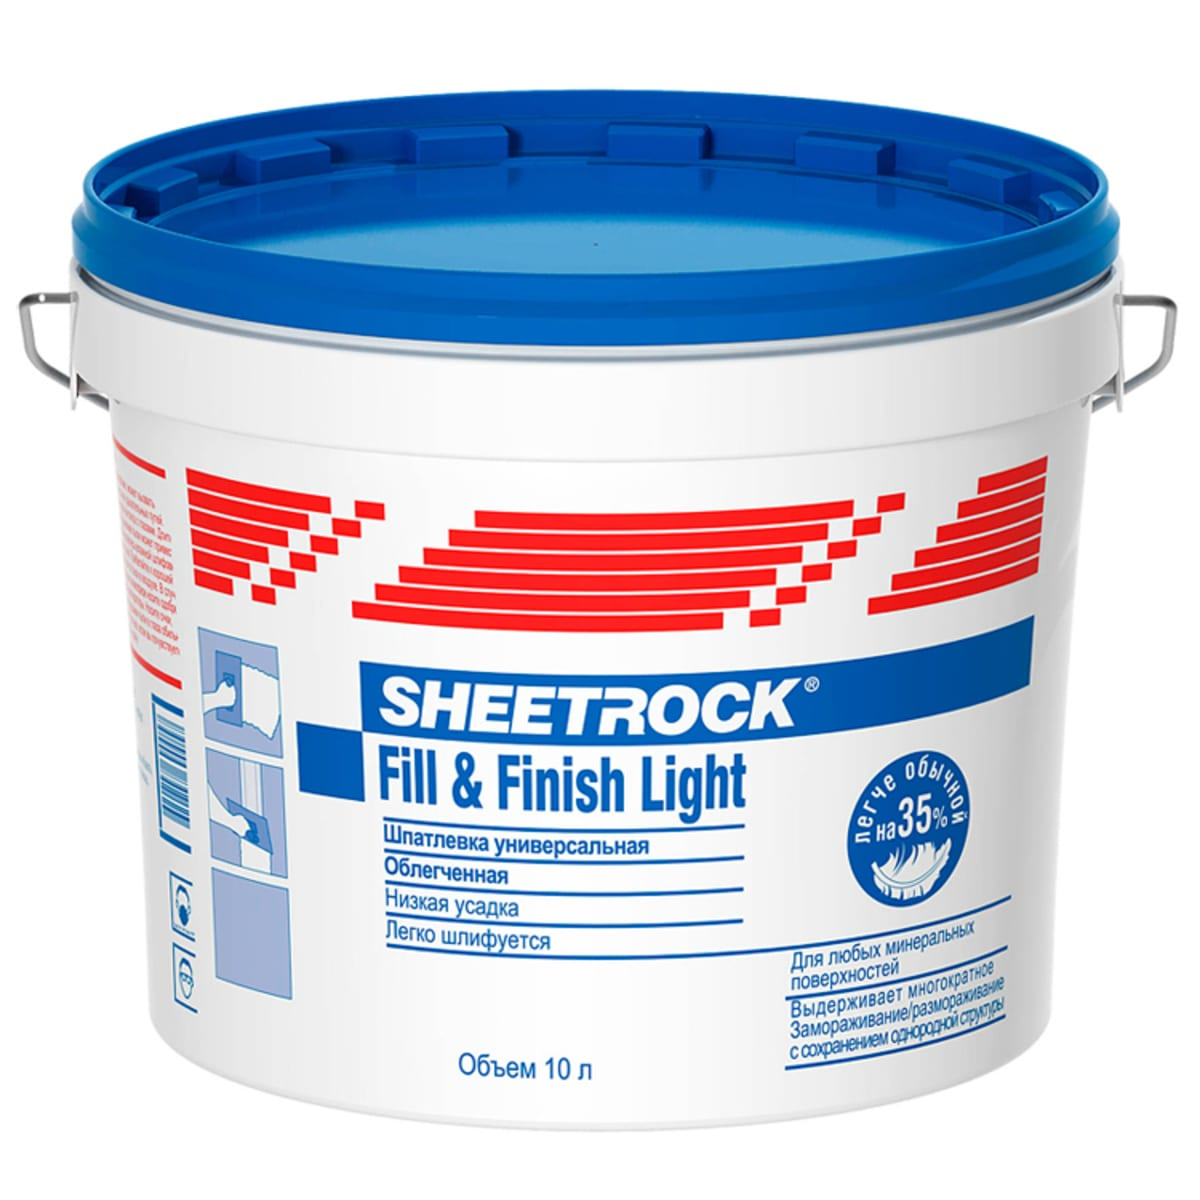 Купить Sheetrock Danogips Fill&Finish Light, 10 л